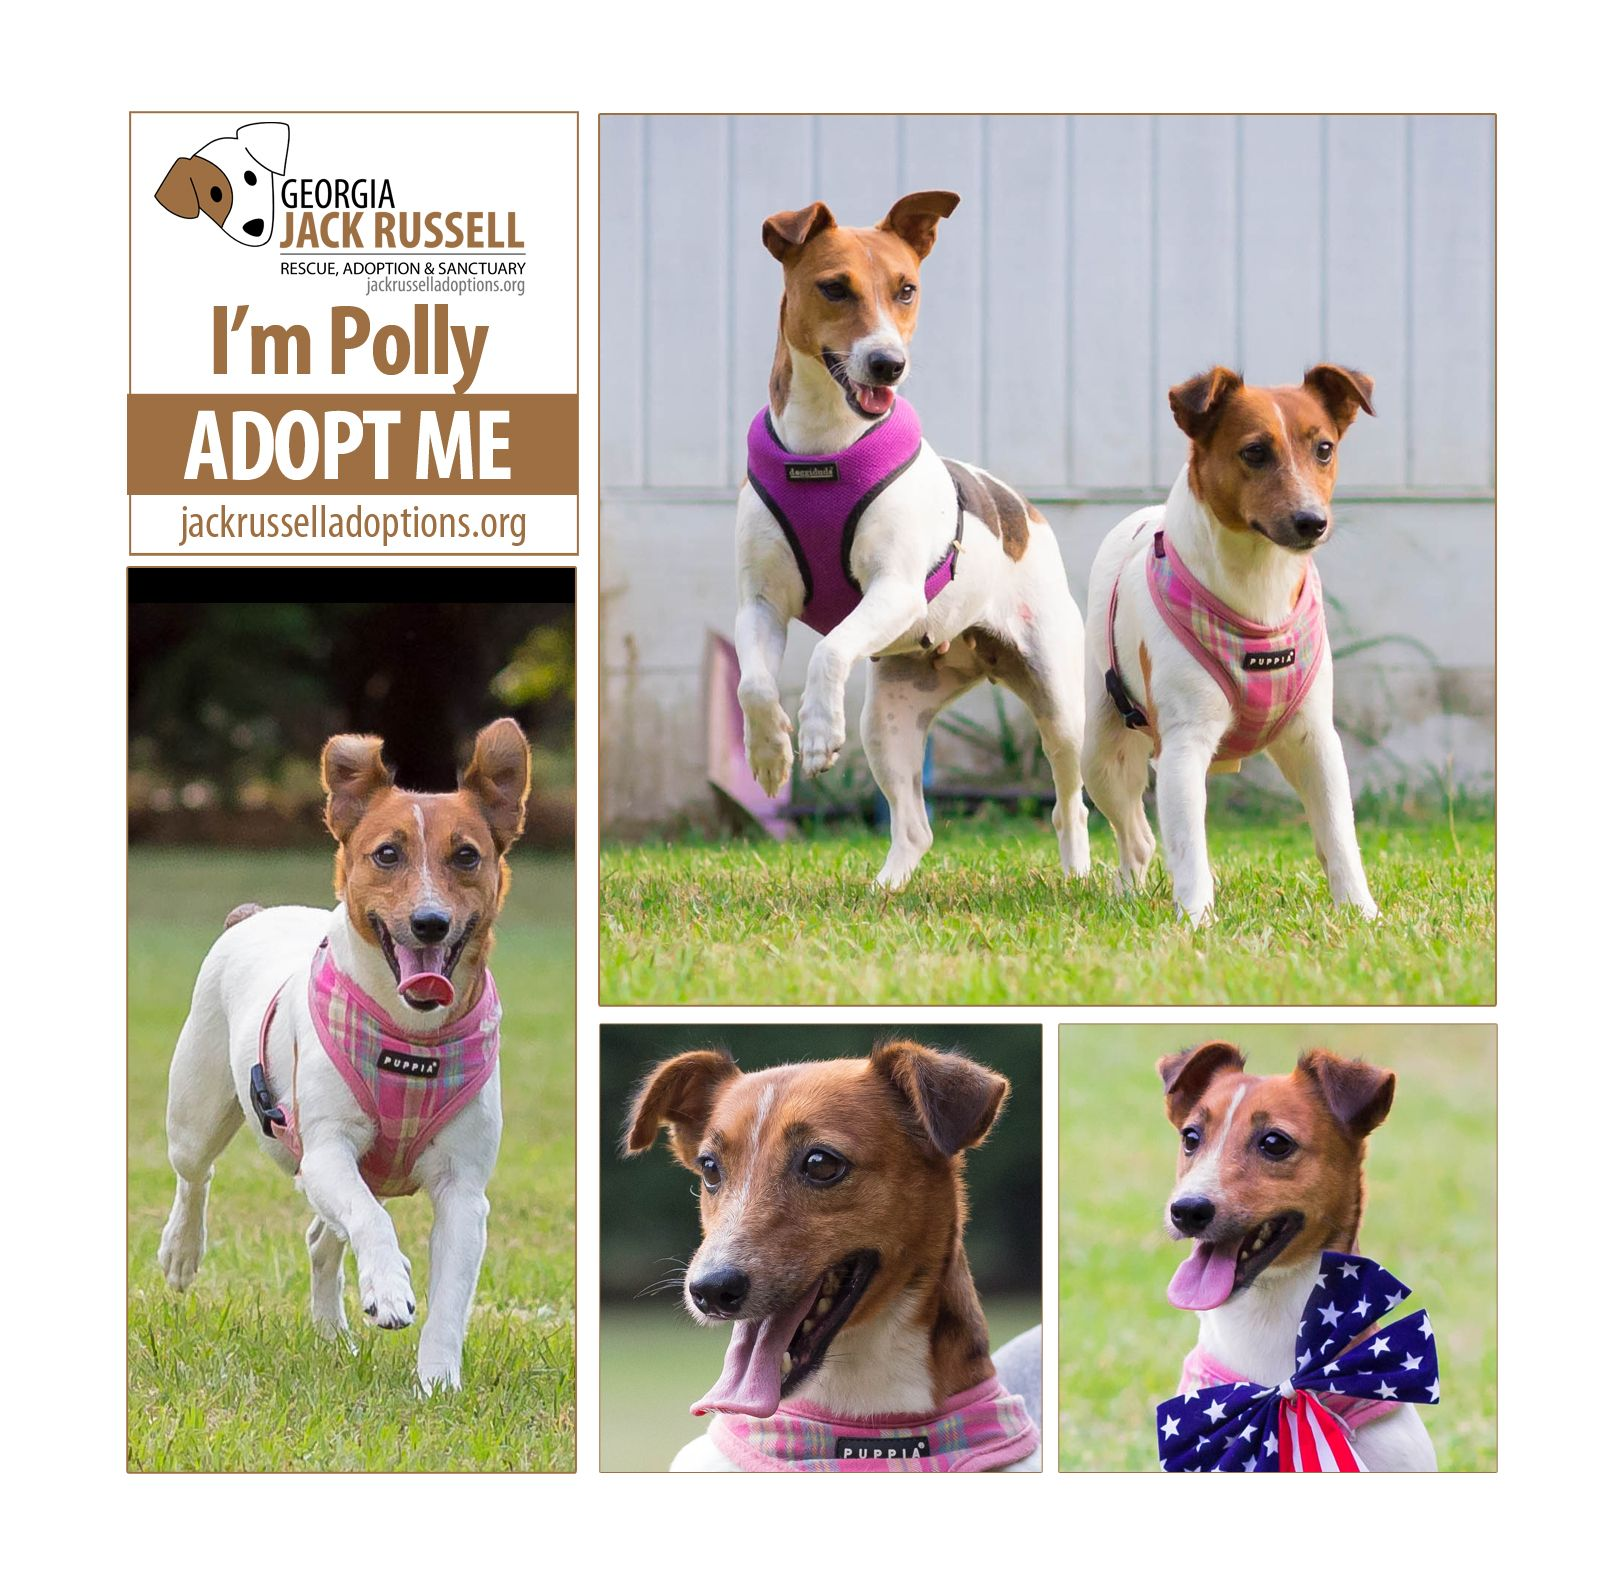 Polly Wolly Doodle All The Day Yes She Do Adoptterrier Jackrussell Cute Dog Pictures Jack Russell Jack Russell Terrier